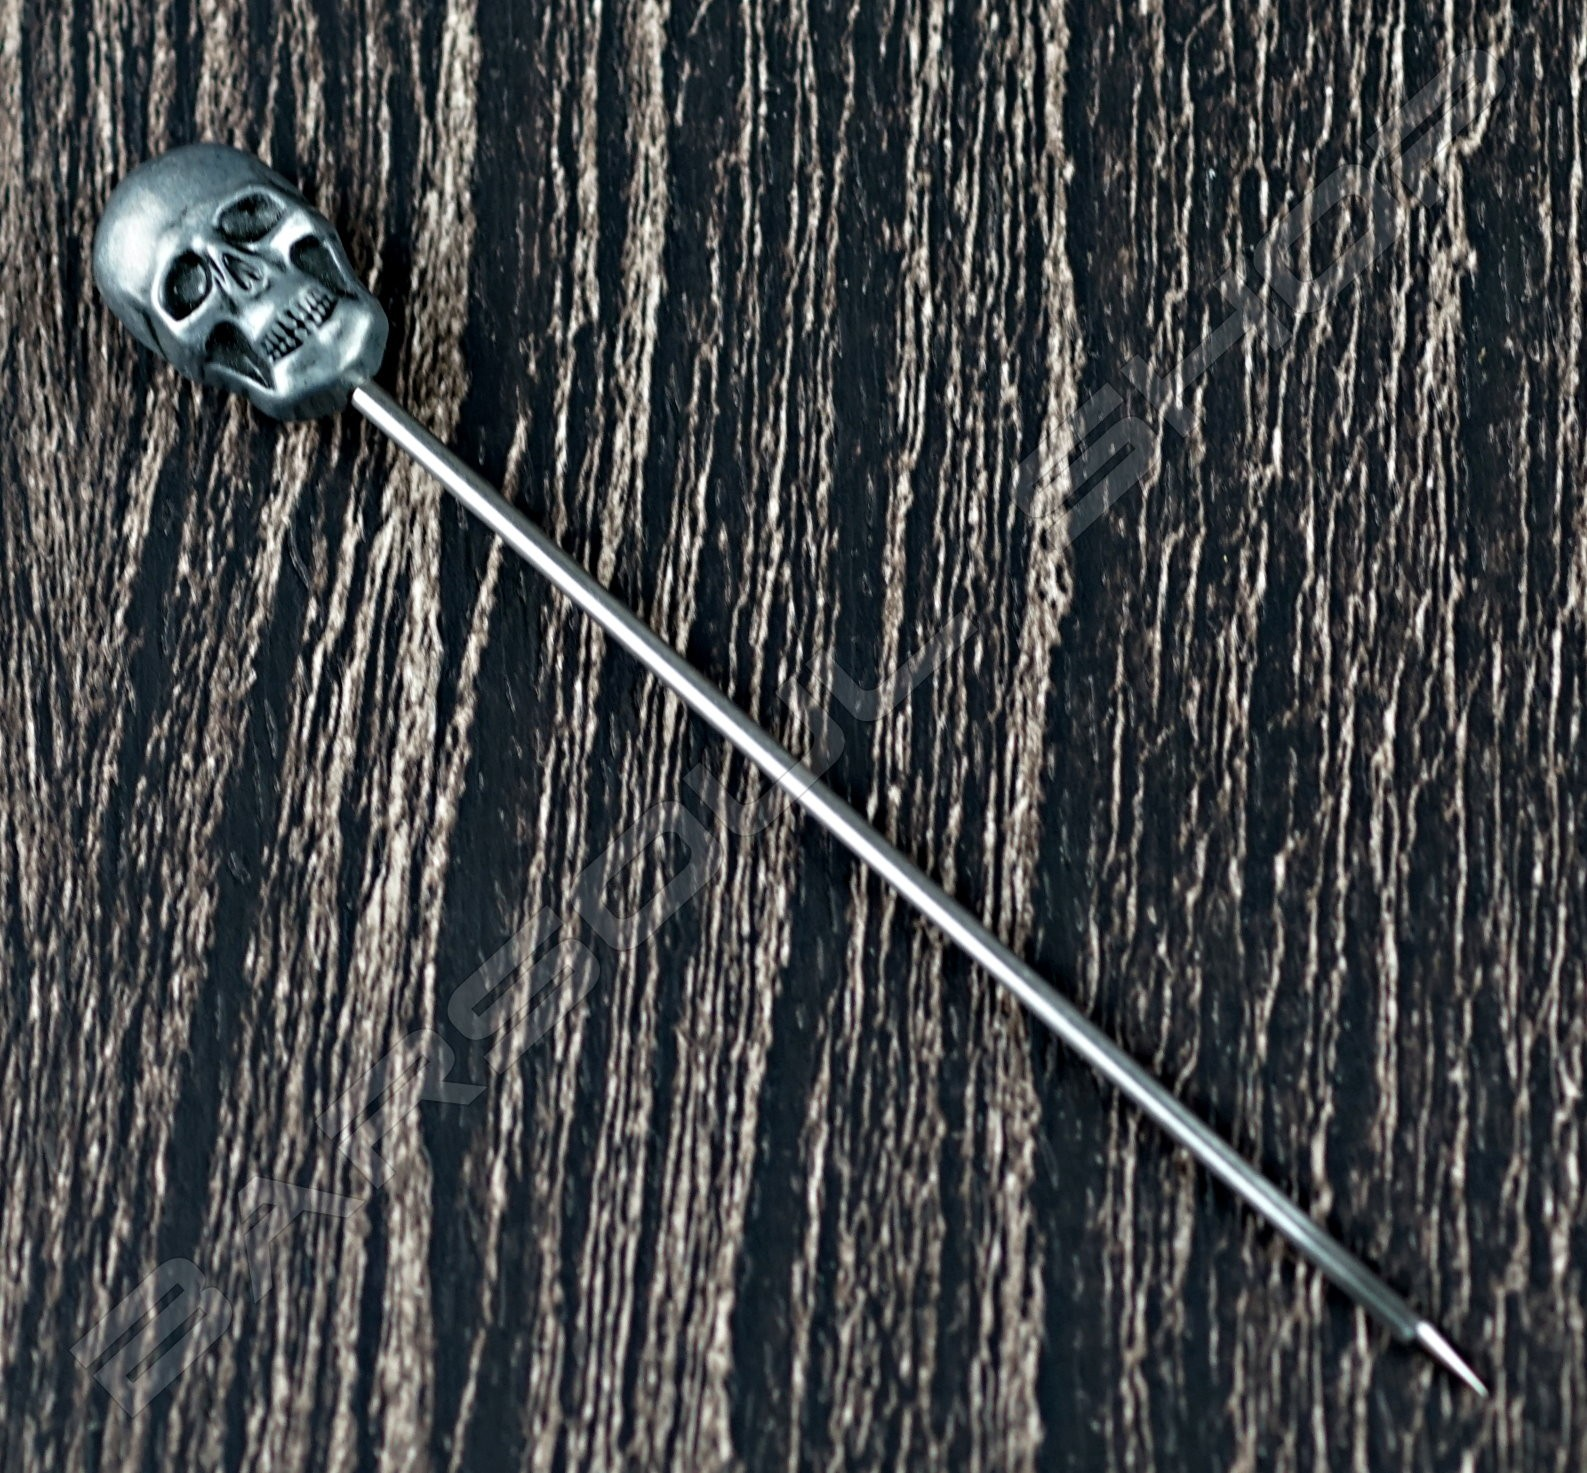 骷髏金屬劍插(銀色) Skull steel cocktail stick(silver)